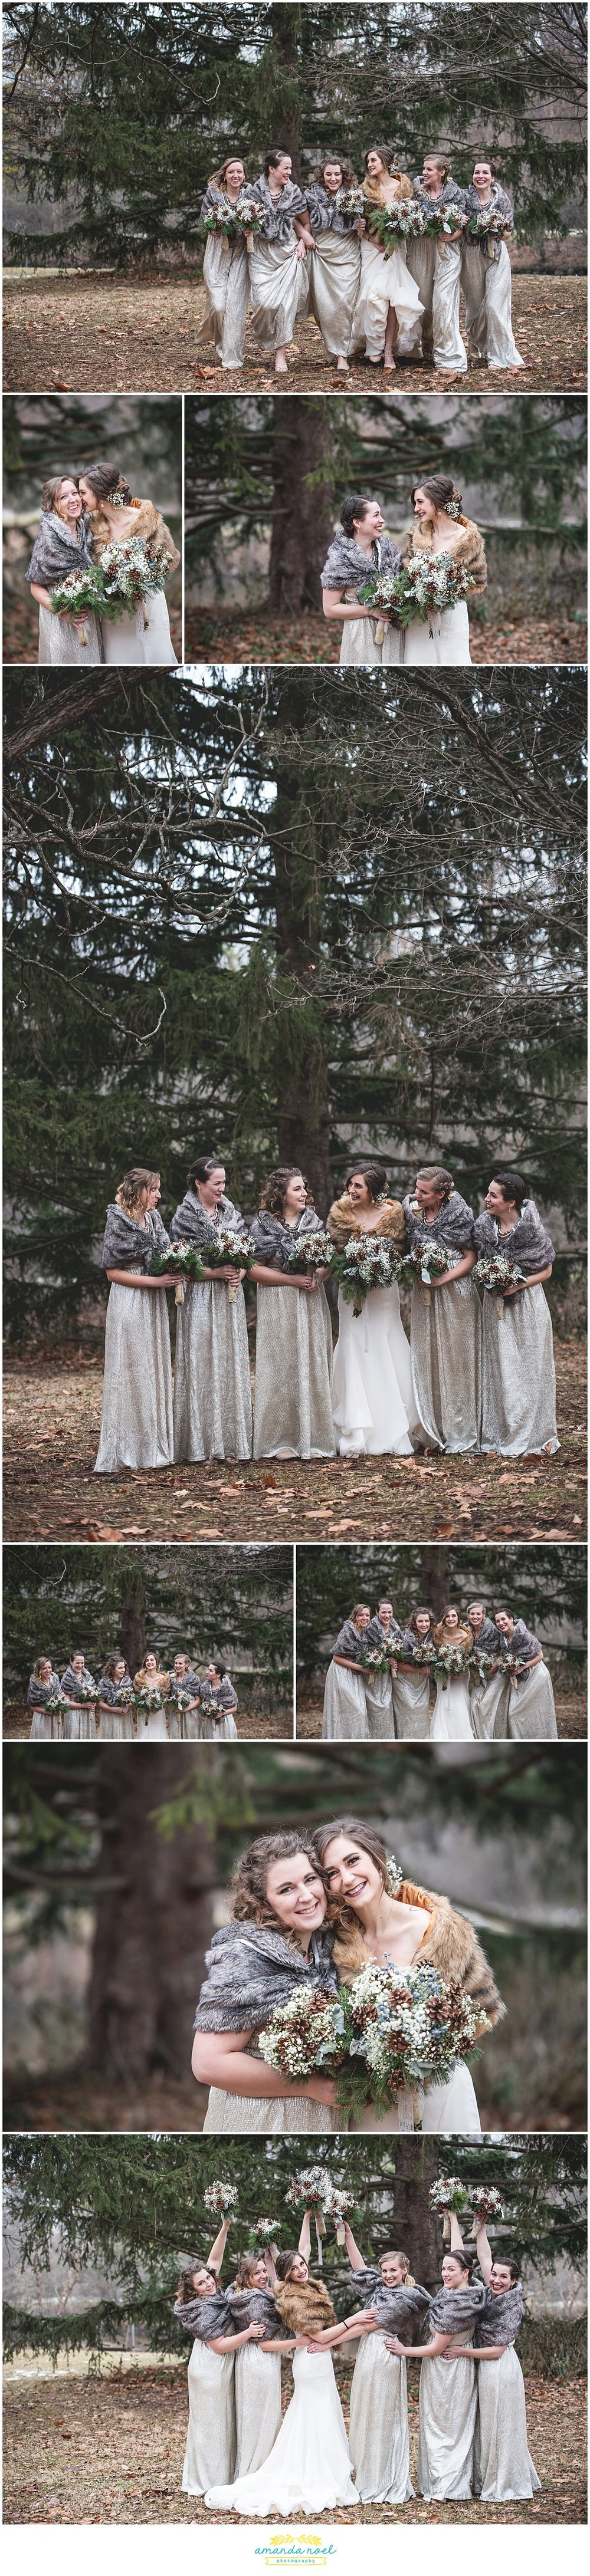 Springfield Ohio rustic winter wedding bridal party portraits bridesmaids pine forest woods | Amanda Noel Photography